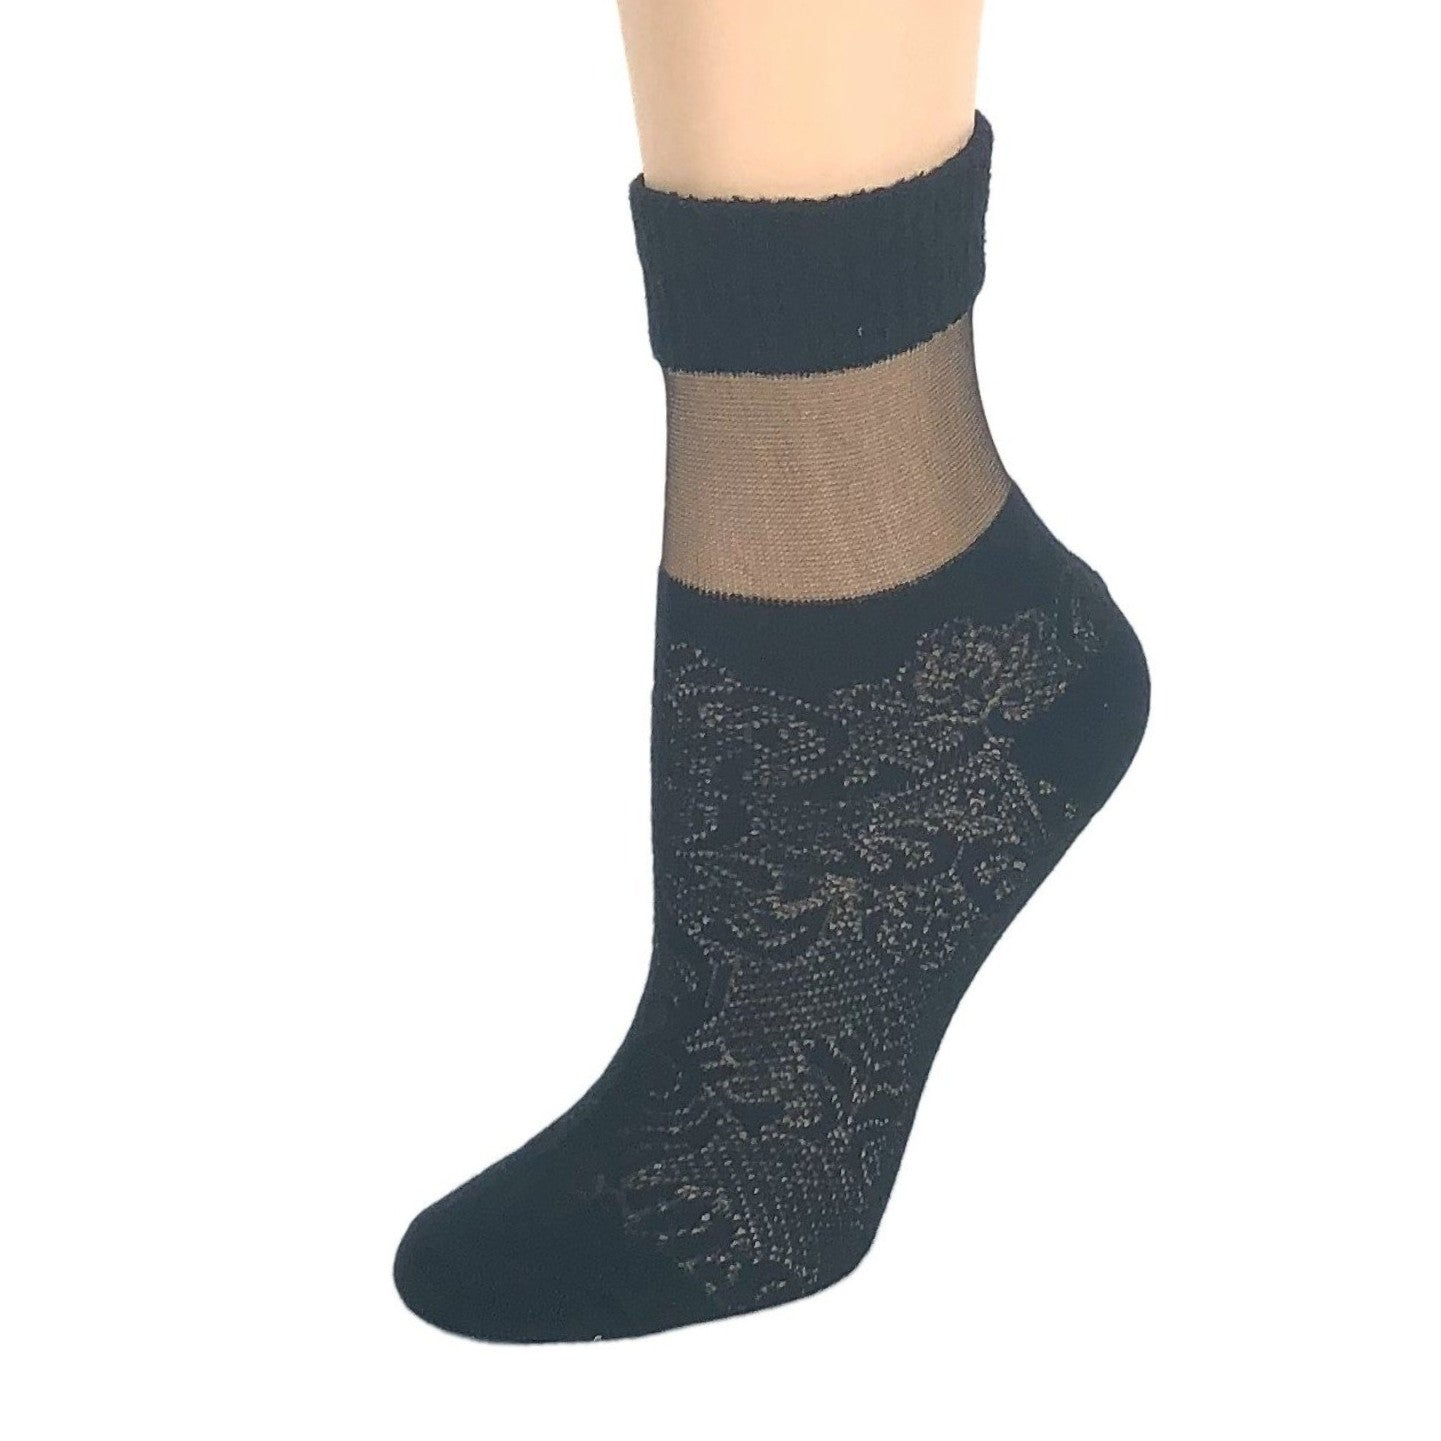 Carving Black Sheer Socks - Global Trendz Fashion®